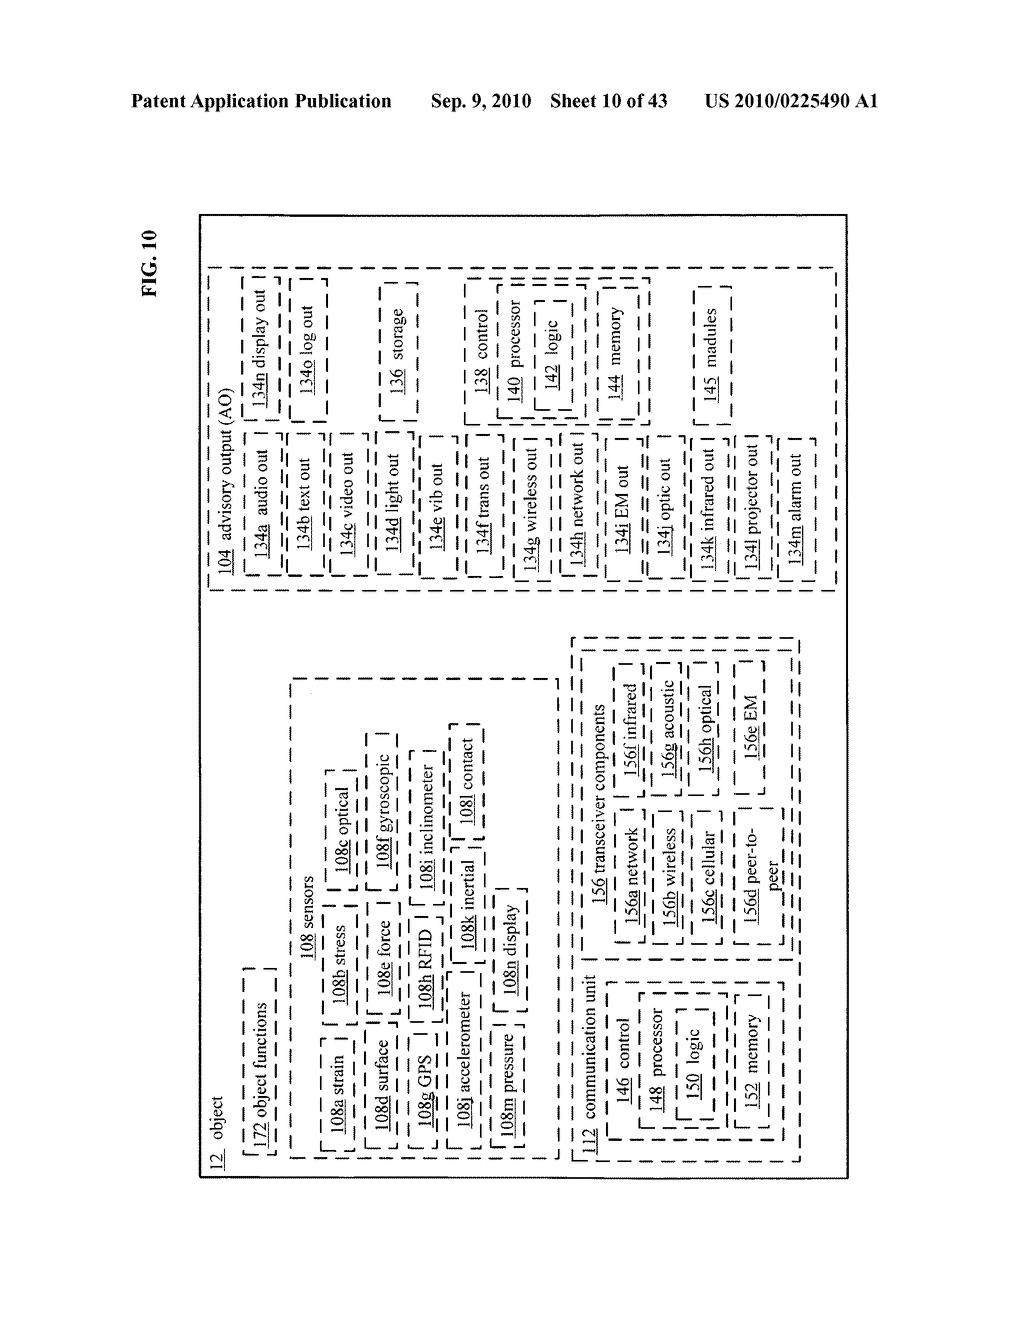 POSTURAL INFORMATION SYSTEM AND METHOD INCLUDING CENTRAL DETERMINING OF SUBJECT ADVISORY INFORMATION BASED ON SUBJECT STATUS INFORMATION AND POSTURAL INFLUENCER STATUS INFORMATION - diagram, schematic, and image 11